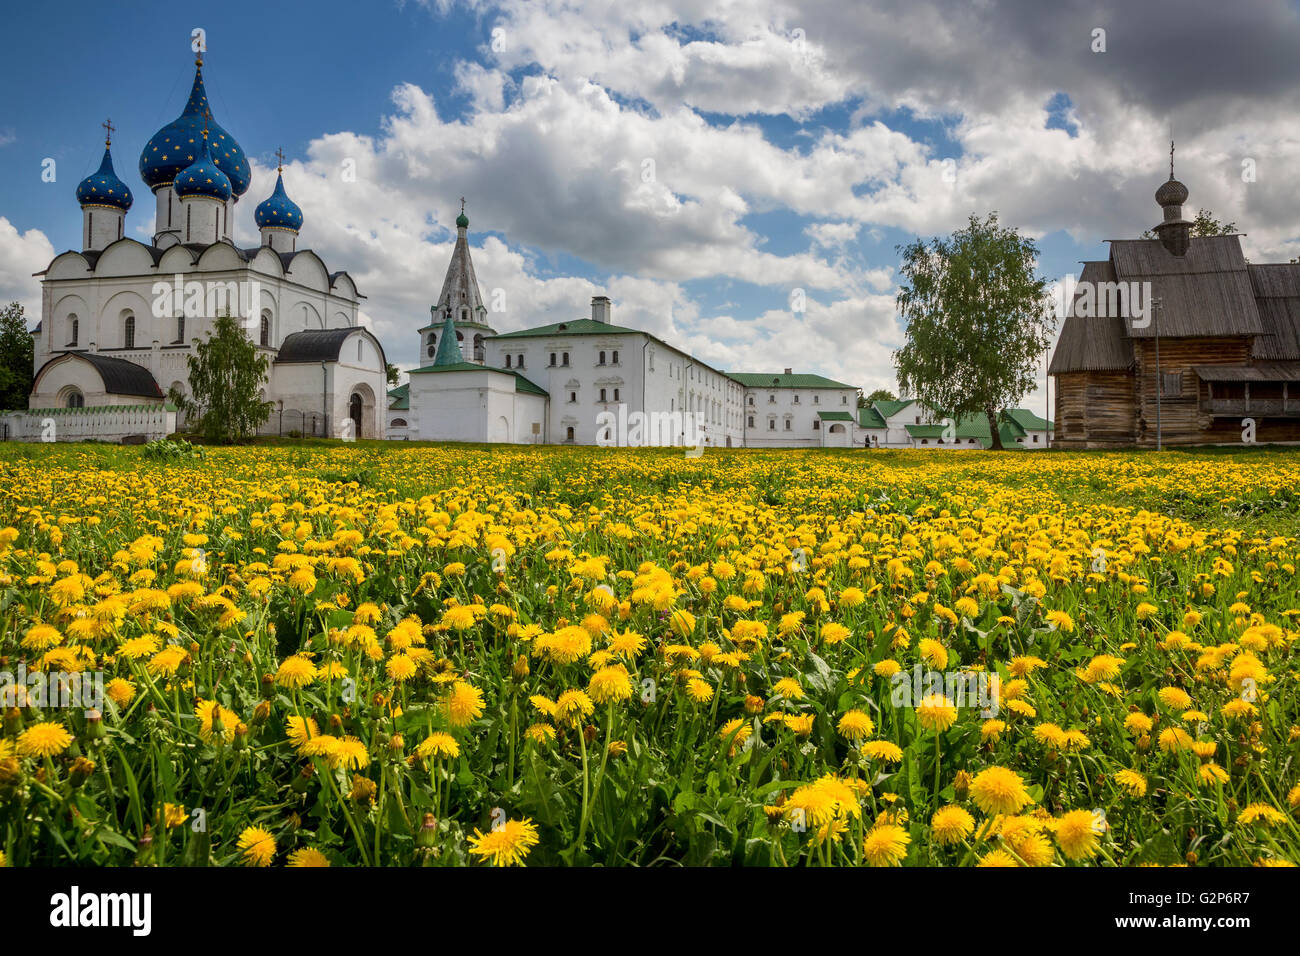 View of ancient Suzdal Kremlin in Russia. Suzdal is a part of touristic route Golden ring of Russia - Stock Image